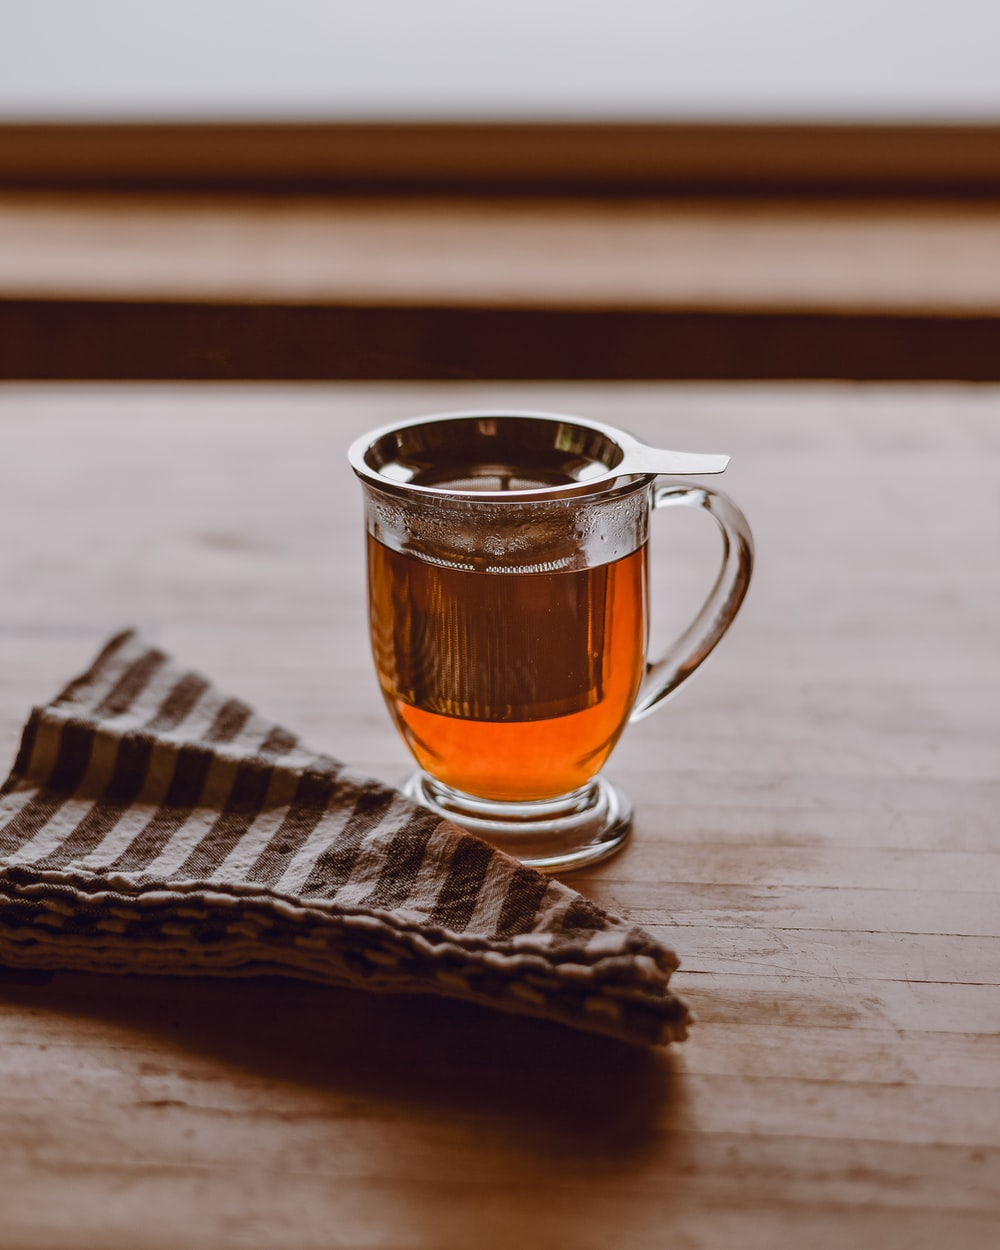 clear glass mug with brown liquid on brown wooden table